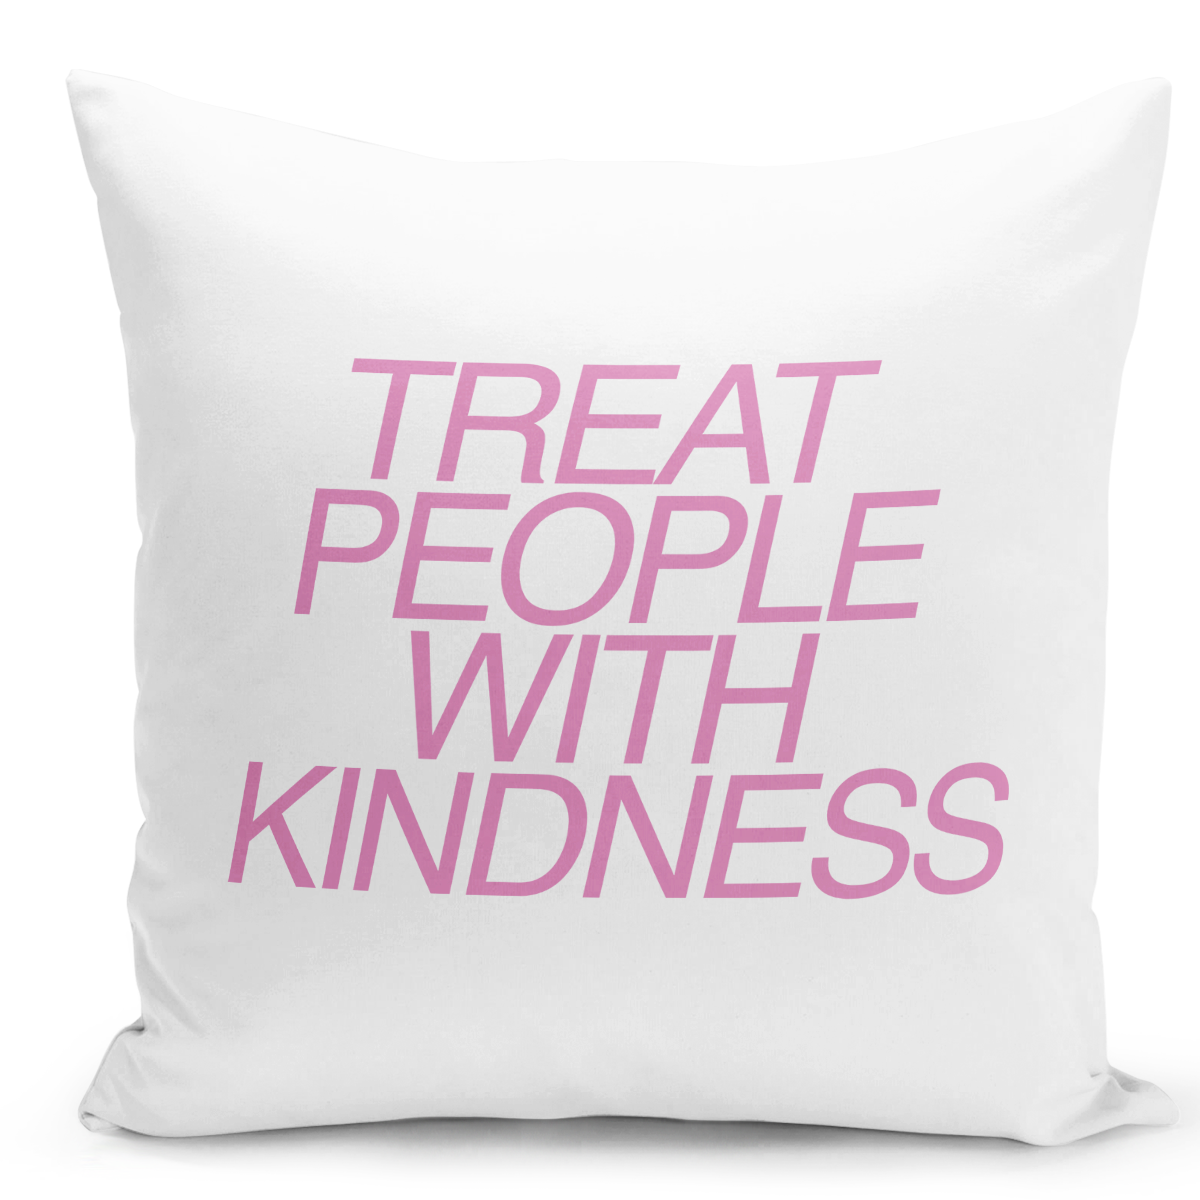 16x16-inch-Throw-Pillow-for-Home-Decor-with-Stuffing-Treat-People-With-Kindness-Positive-Advice-Pillow-With-Words-